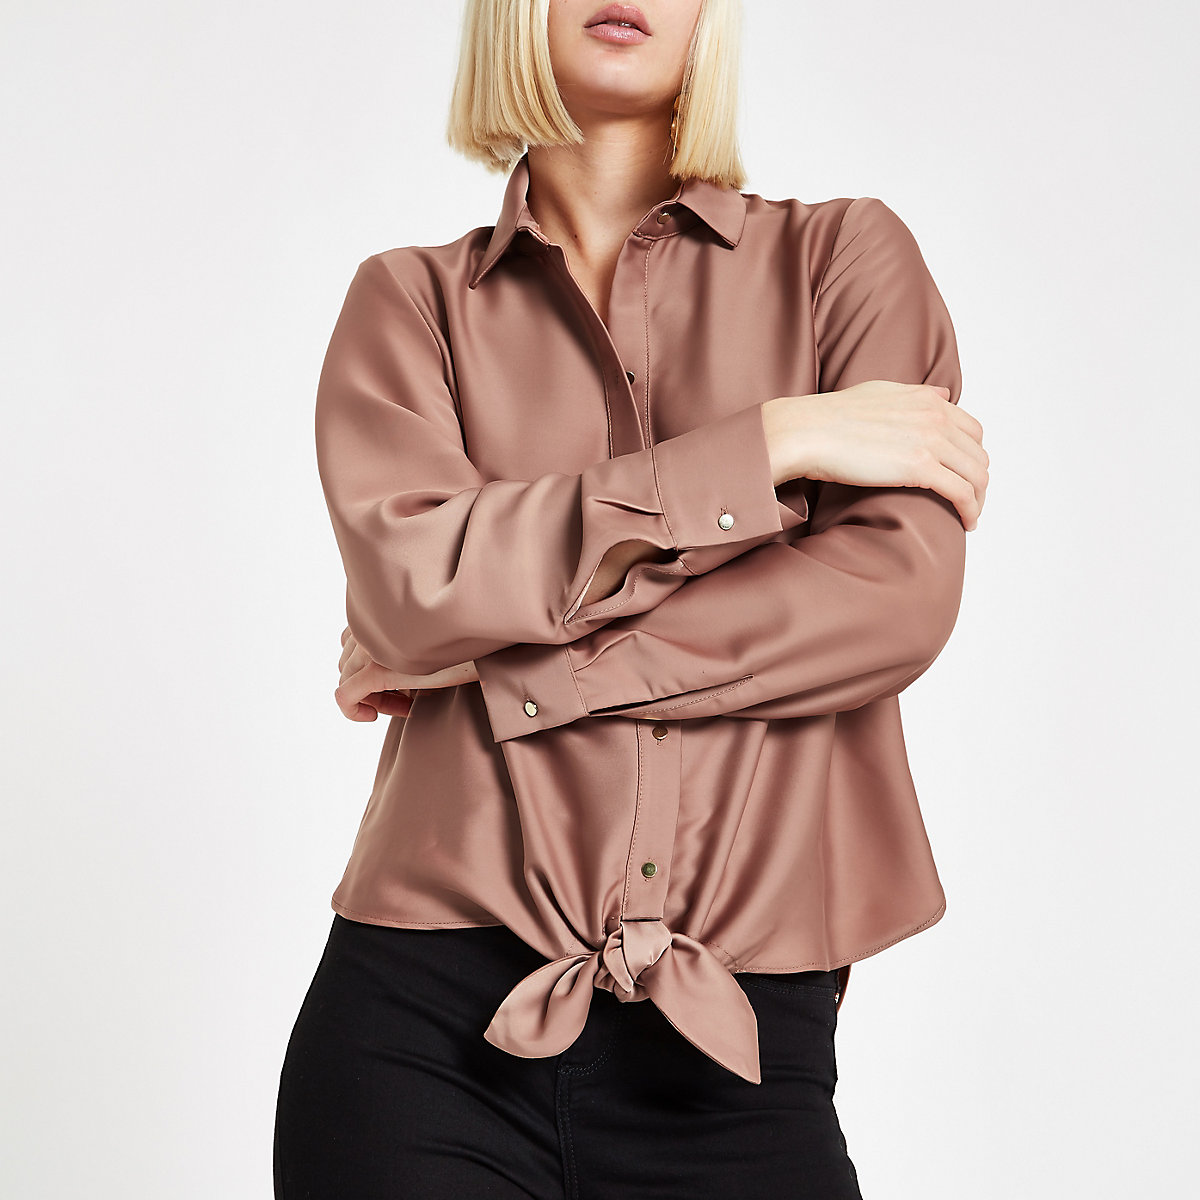 Copper tie front shirt